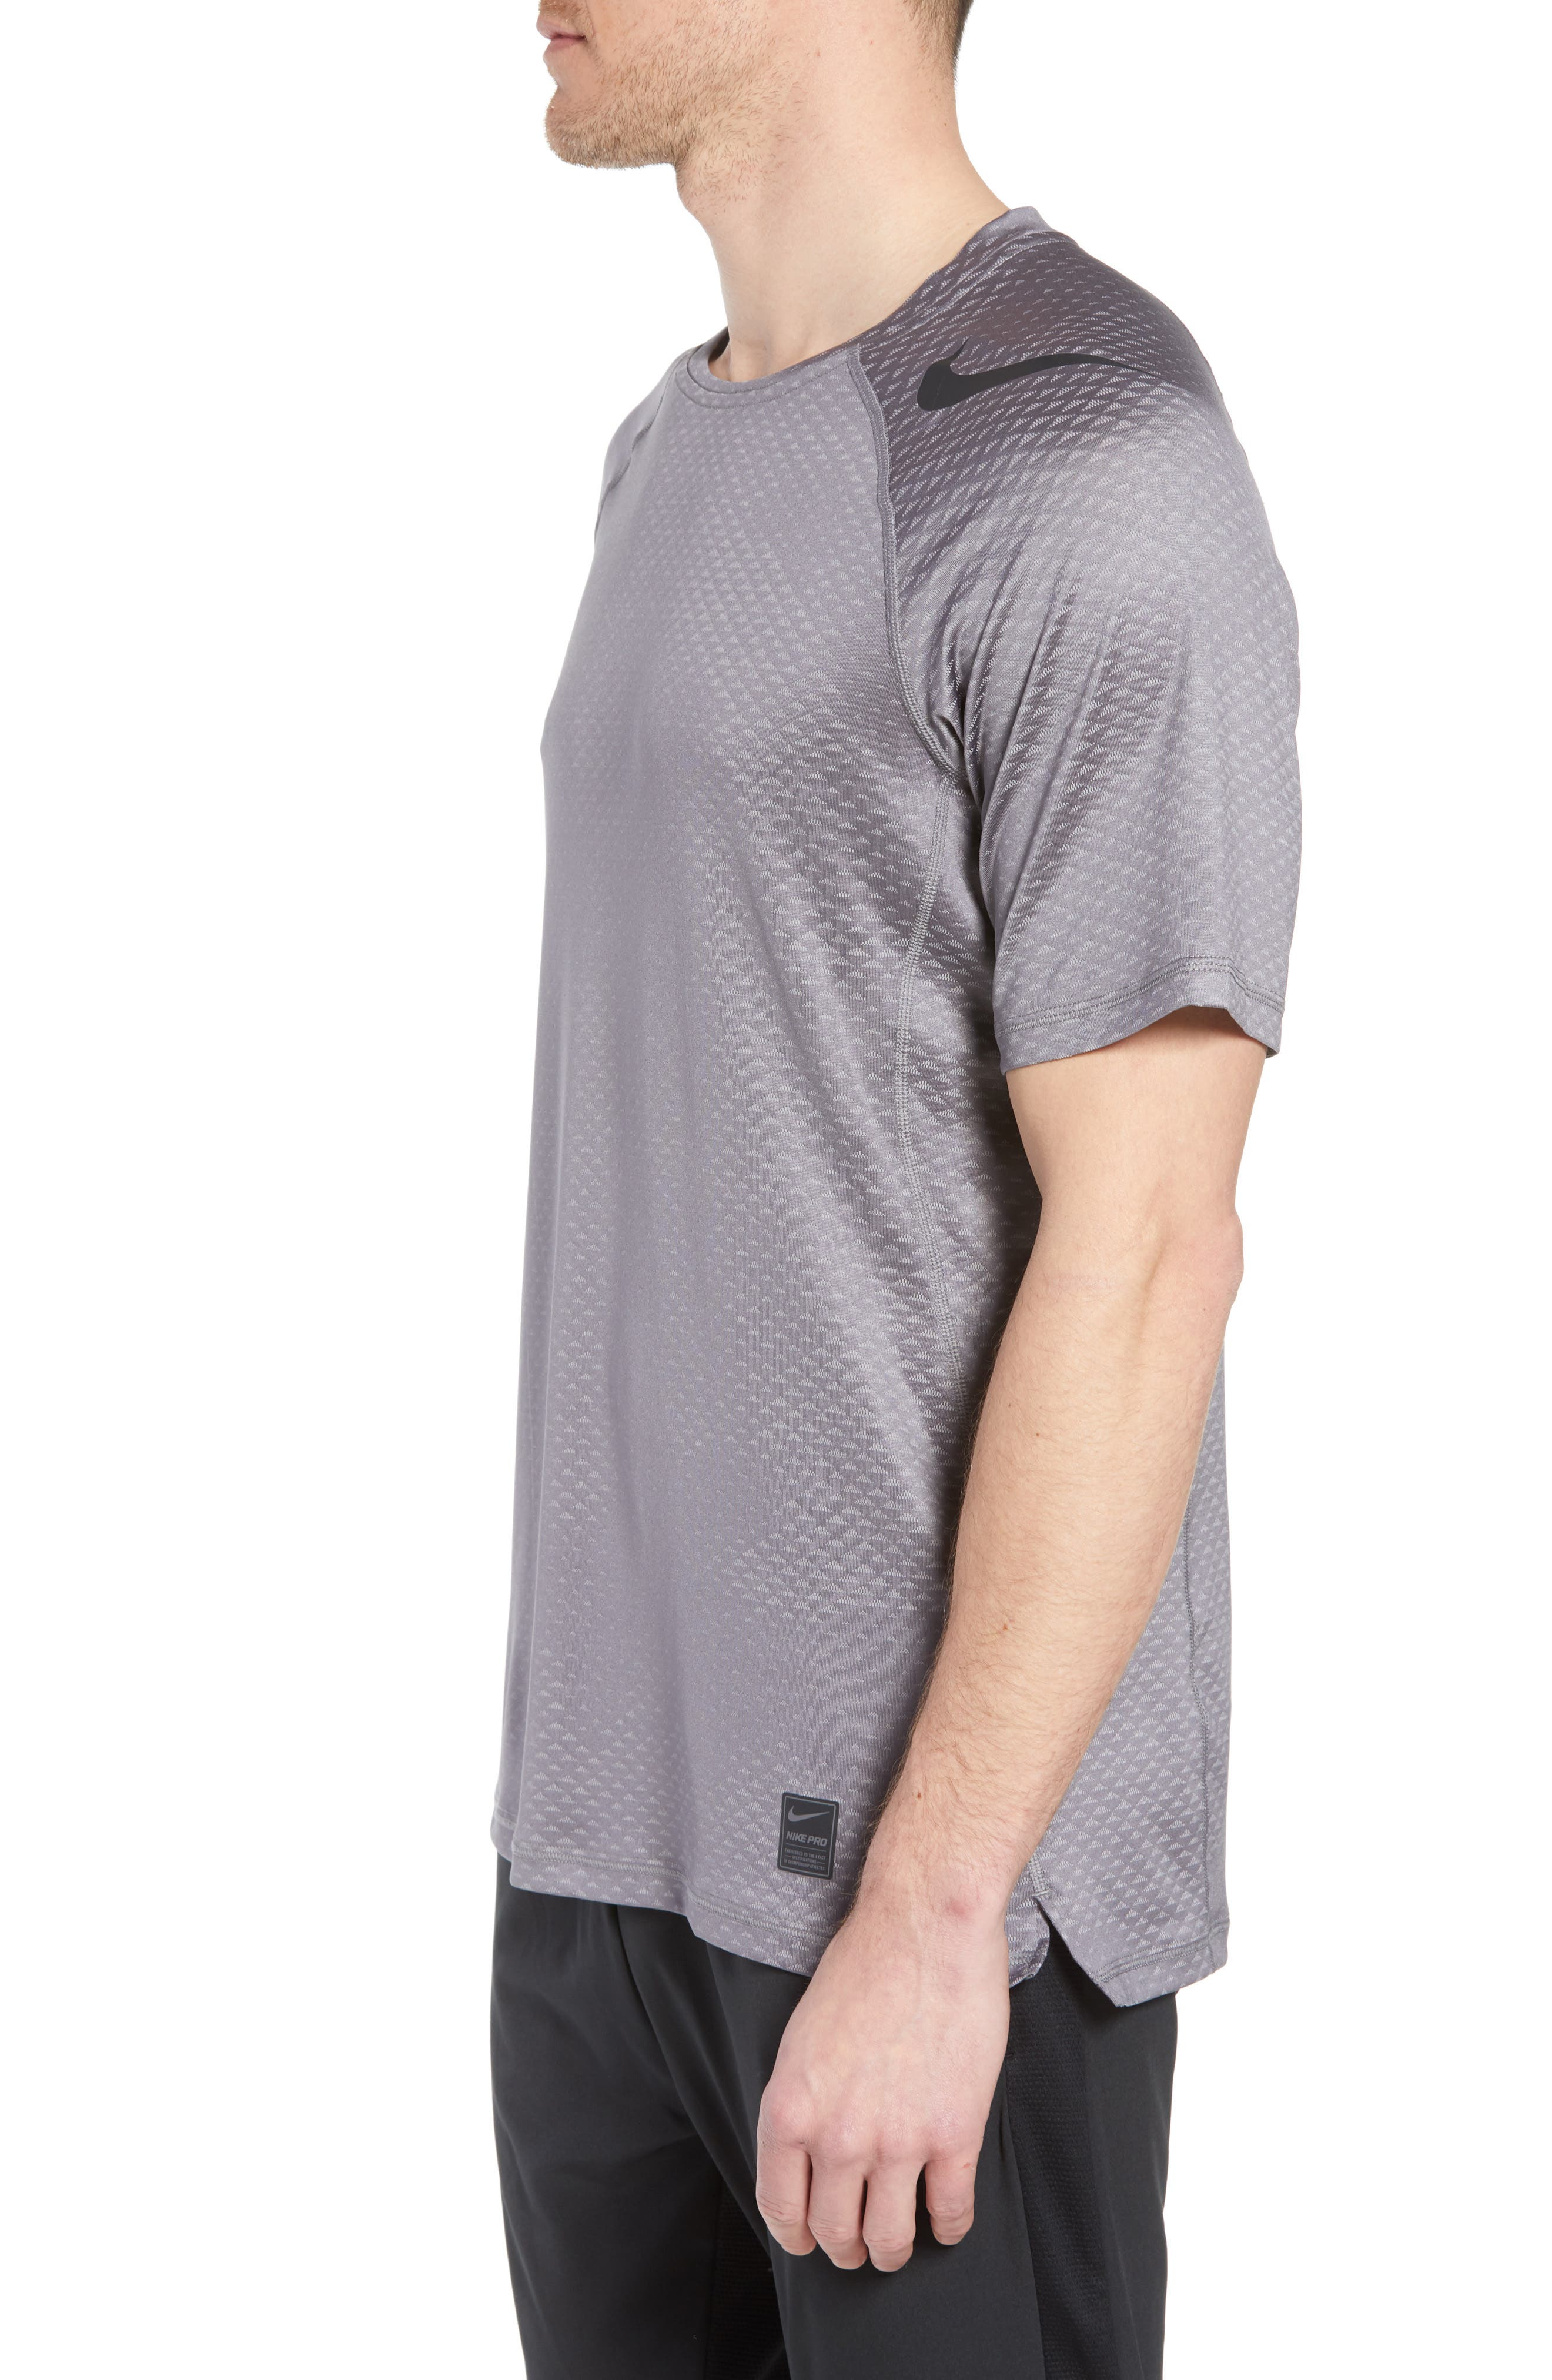 Pro HyperCool Fitted Crewneck T-Shirt,                             Alternate thumbnail 3, color,                             Atmosphere Grey/ Black